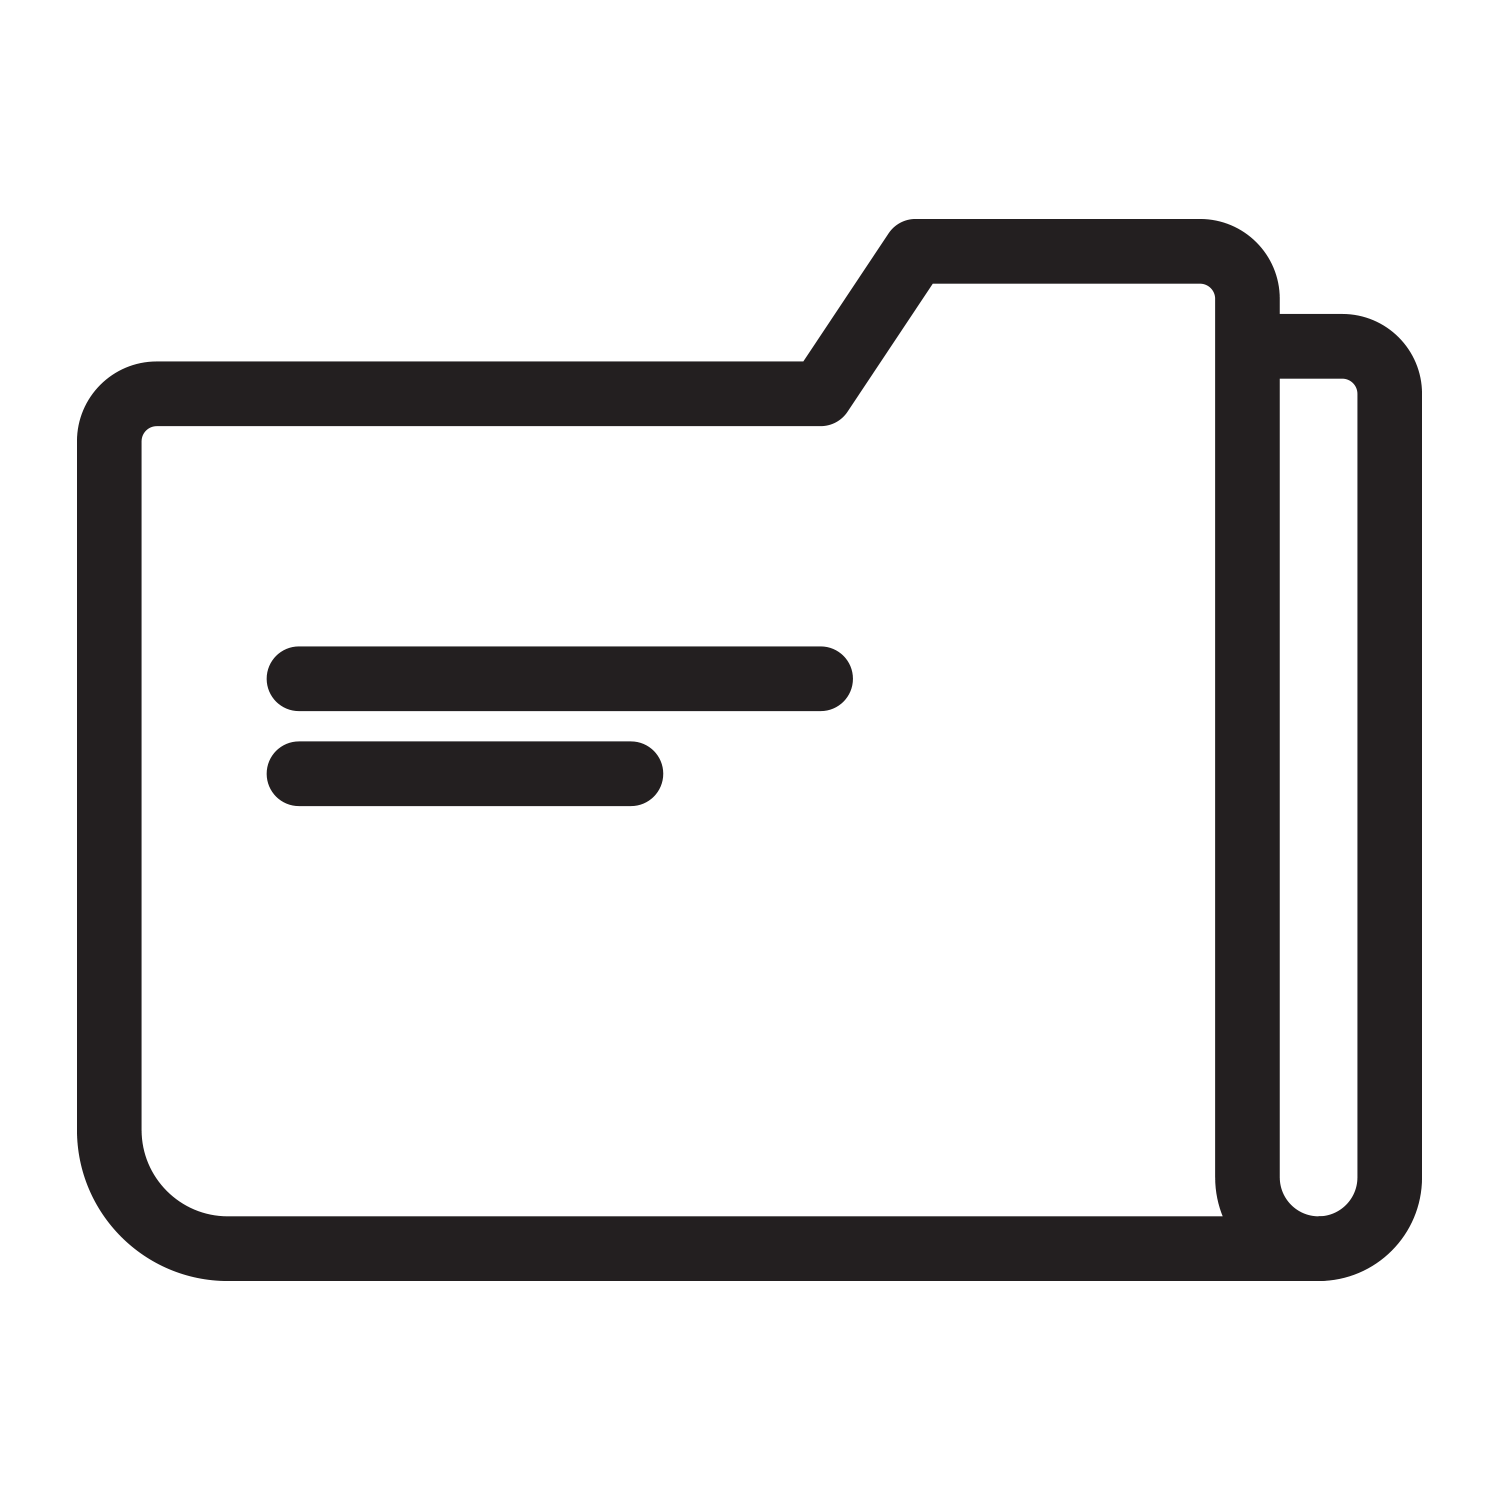 Folder Icon, read previous updates about the Legacy Trail